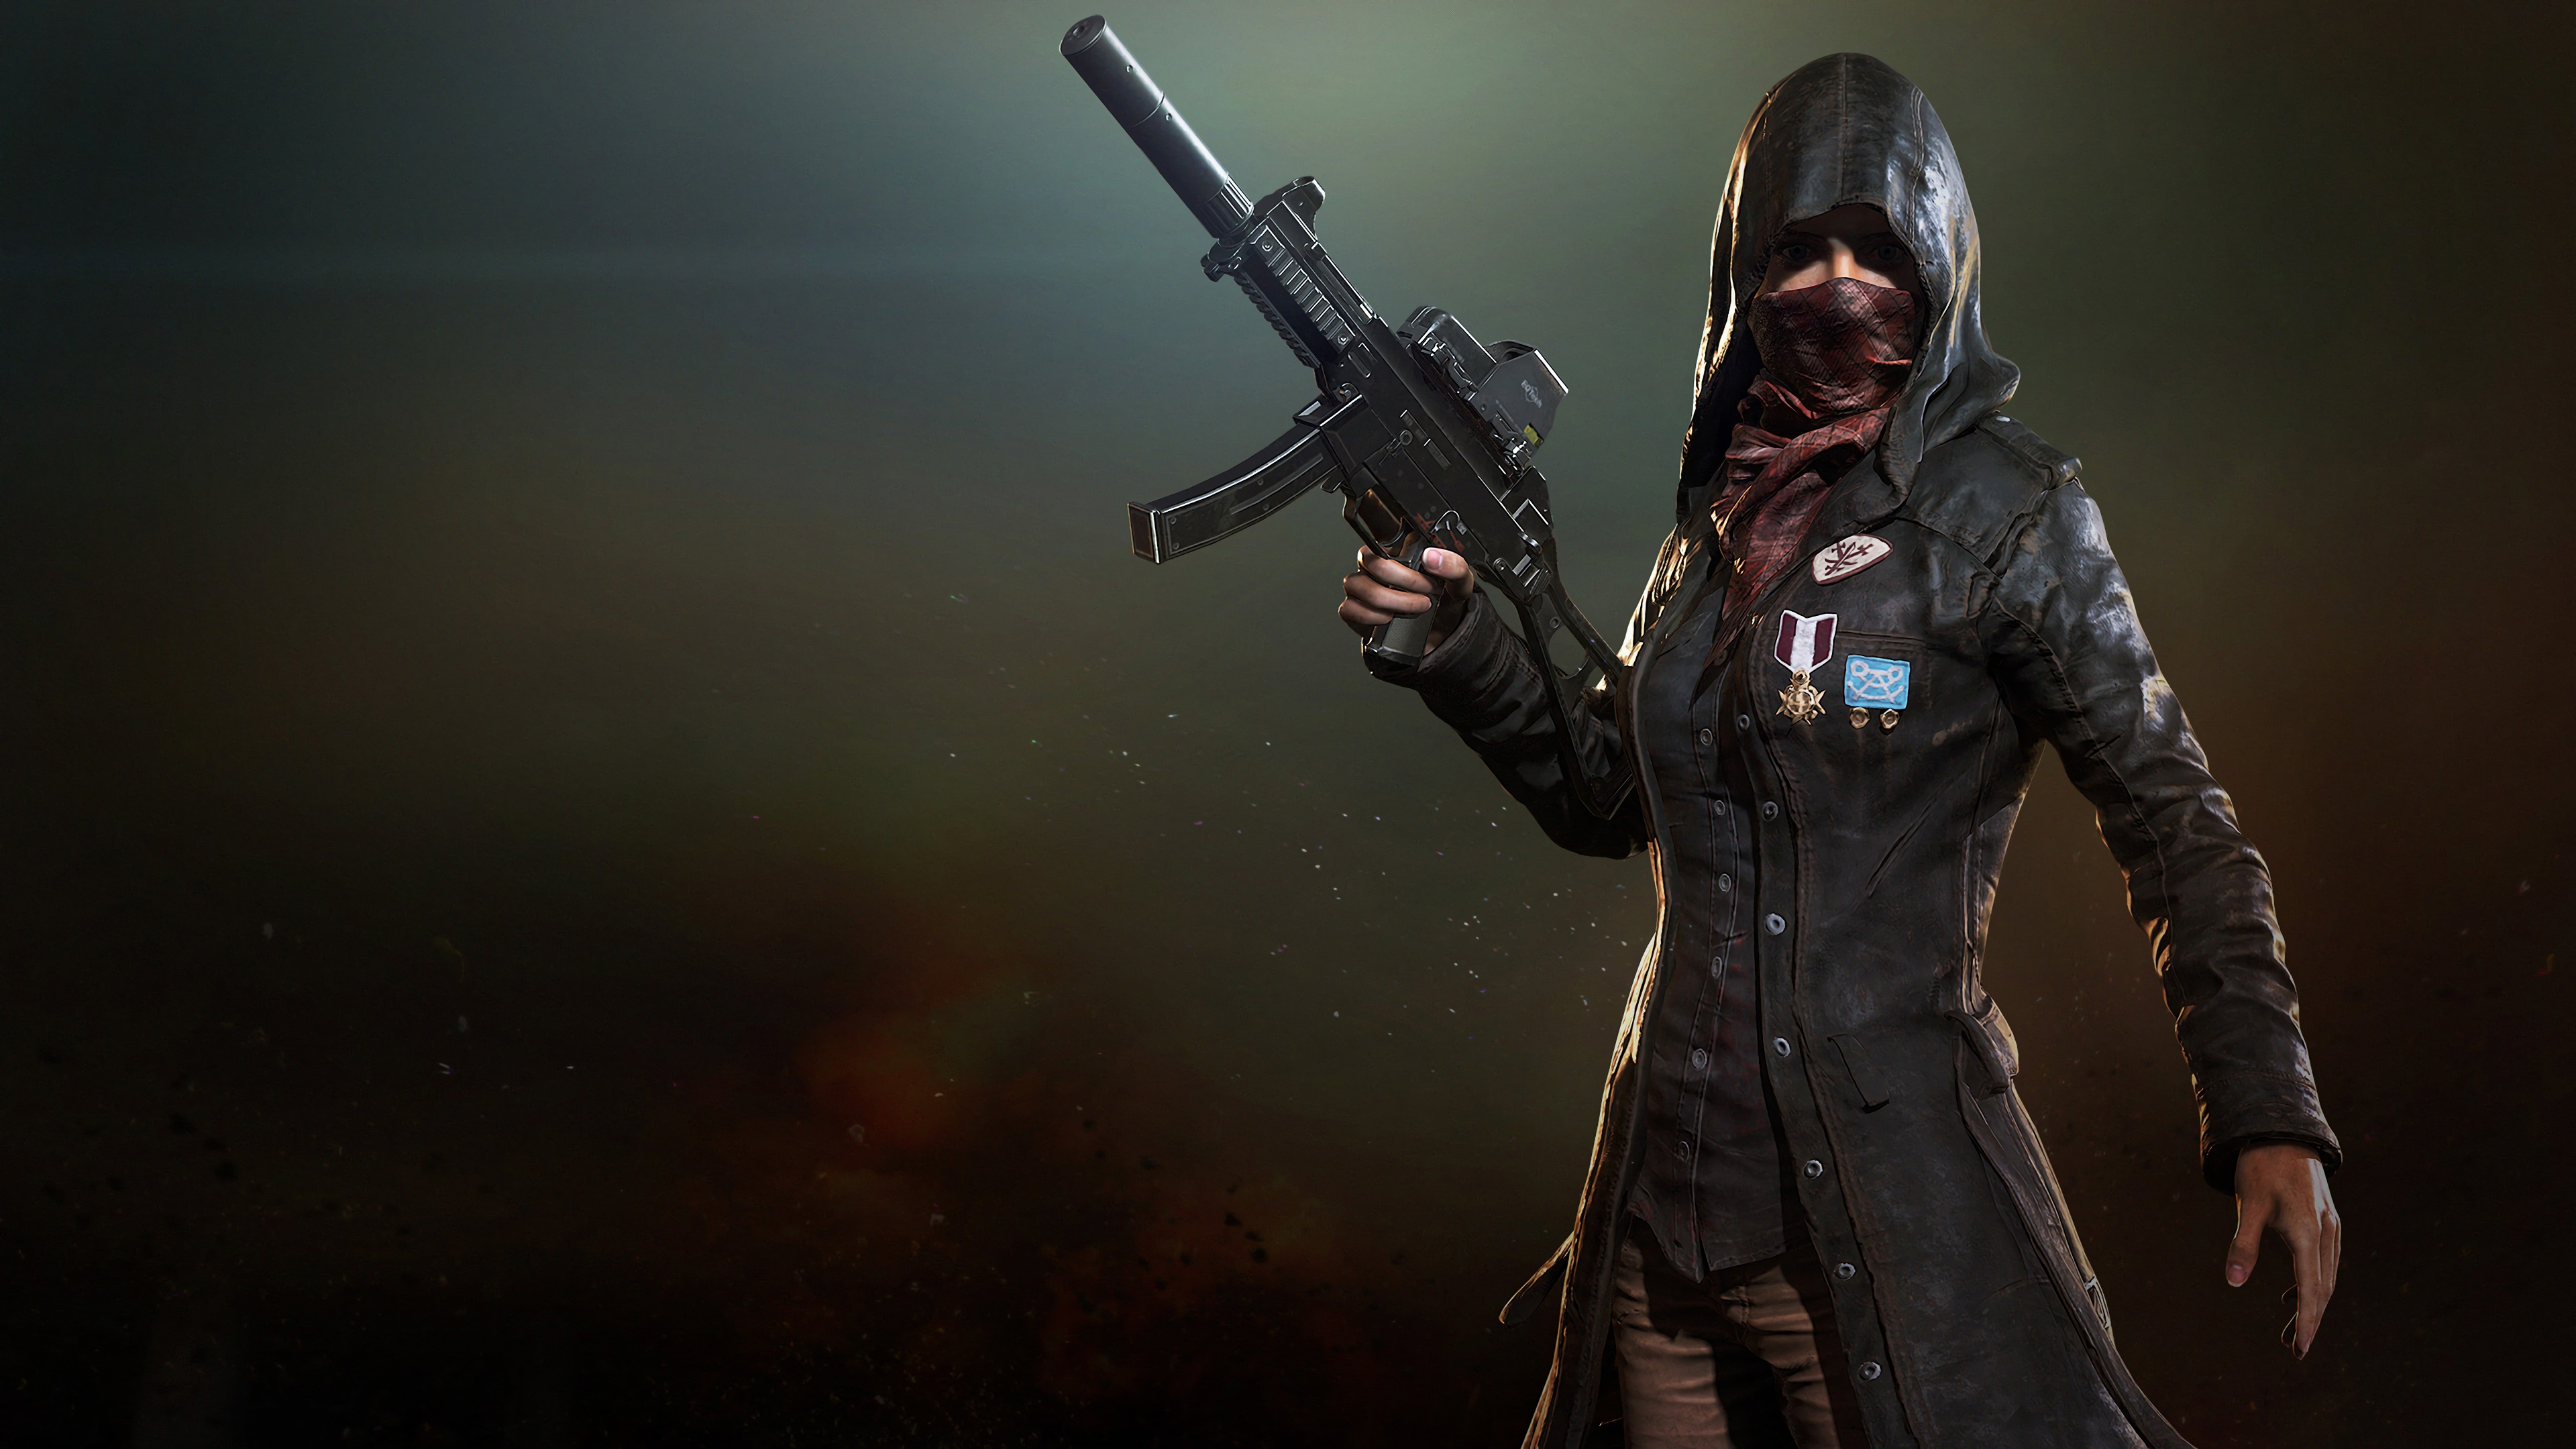 Pubg Trenchcoat Girl 4k Hd Games 4k Wallpapers Images